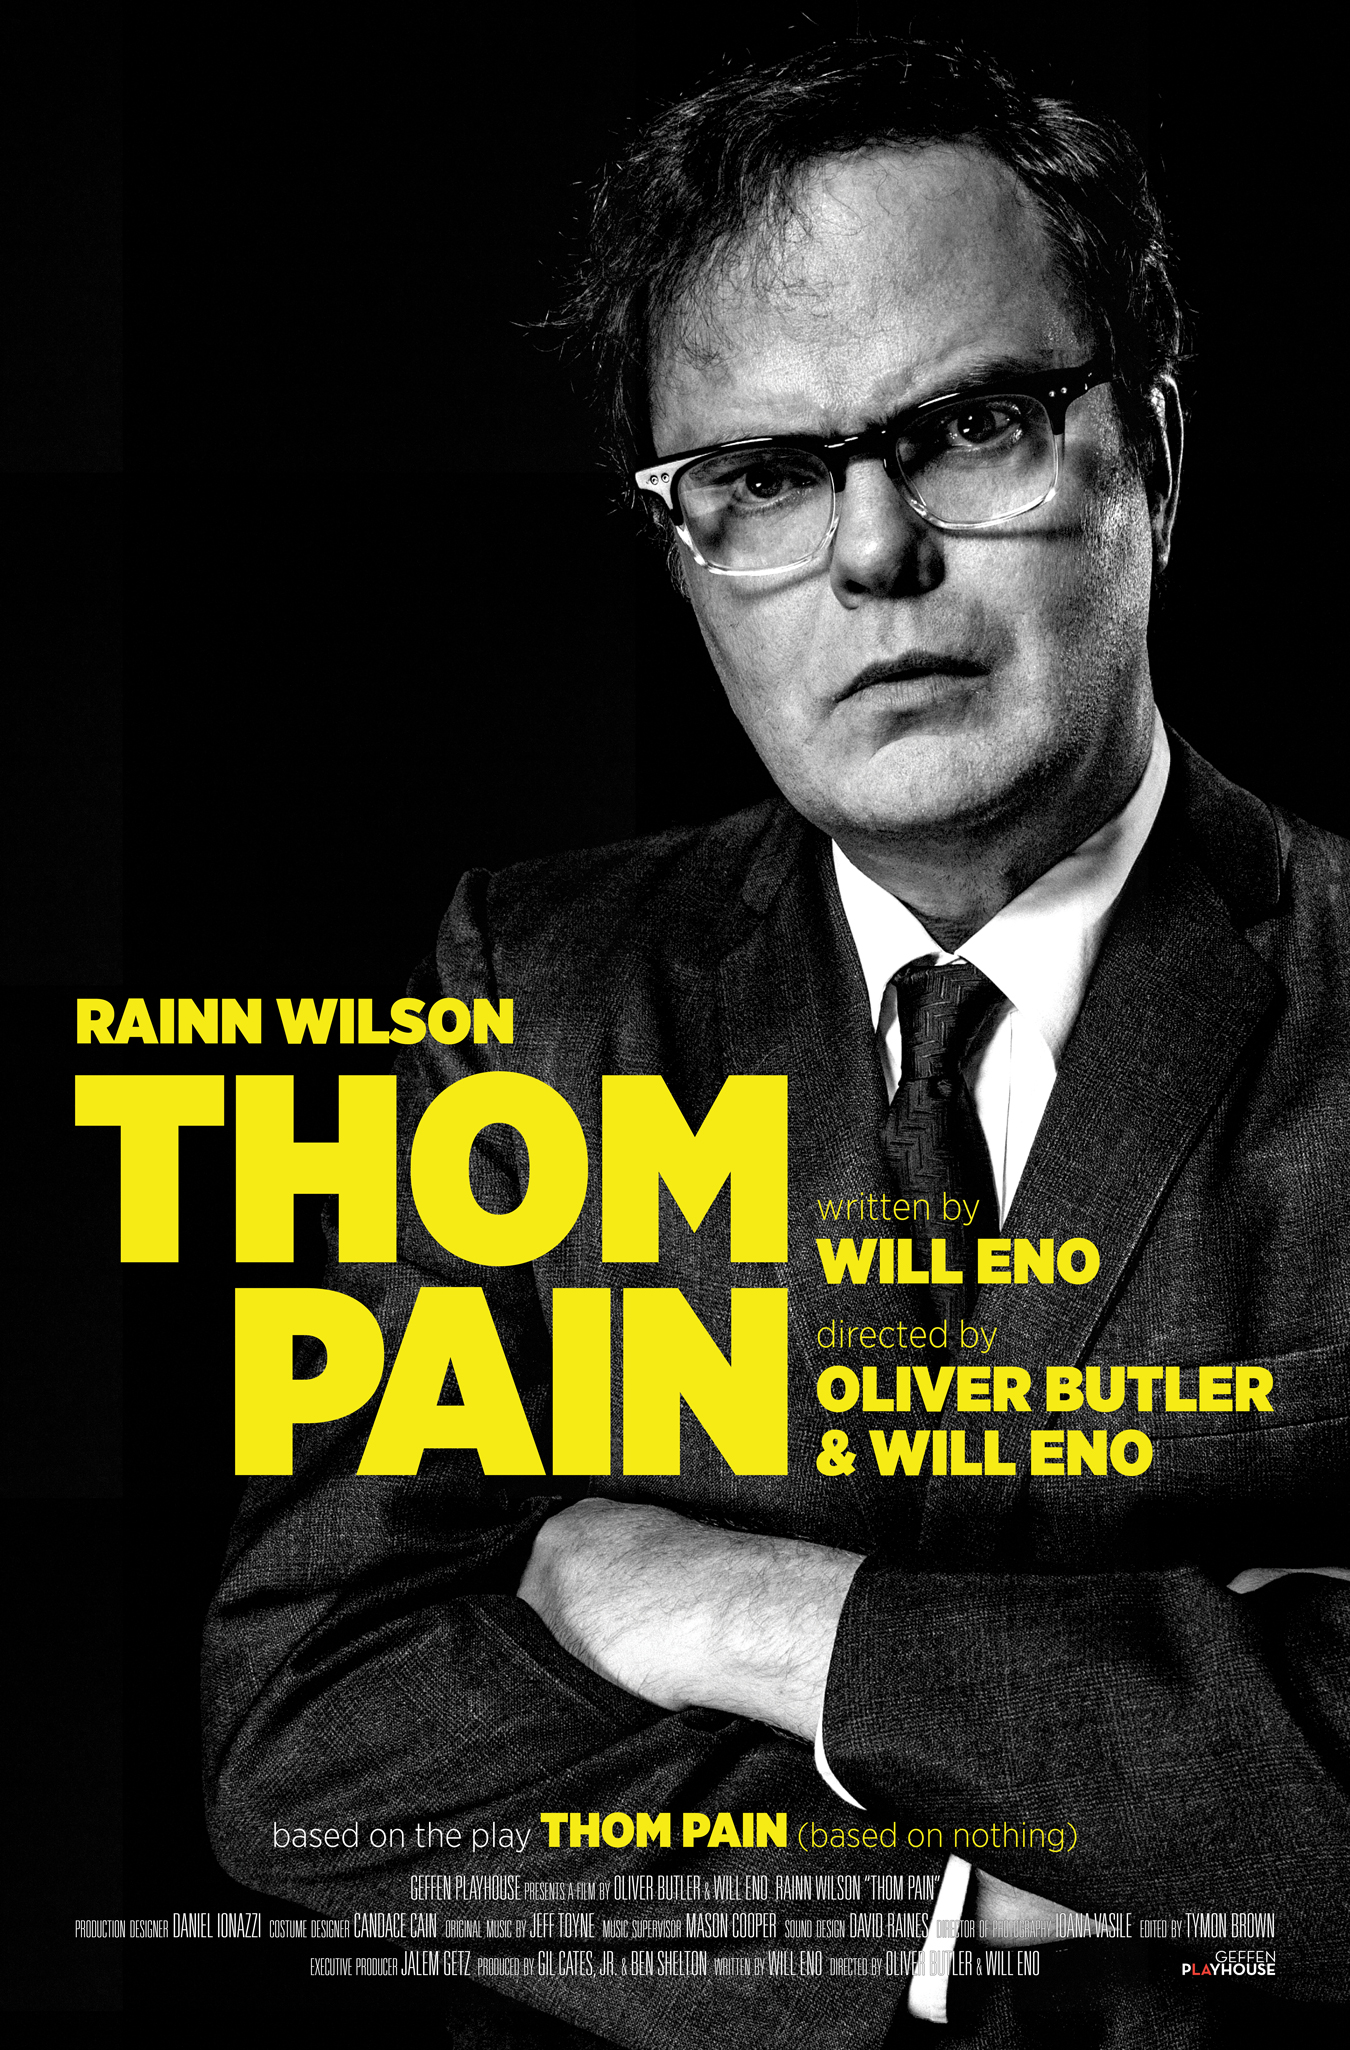 Special Event: screening& discussion with Rainn Wilson - Courtesy of Geffen Playhouse & Broadway HDThom Pain is just like you, except worse. One night, he finds himself on a stage, in the dark, in a theatre. In the audience are people who, just like him, were born and will die. Thom is going to try to make sense of it all. He's going to try to save his life, to save their life, to save your life - in that order. A camera crew captures the night, as various forces align to produce a reckless.June 11th, 7pm, 2018BjorklundenFestival or Premium Pass Required